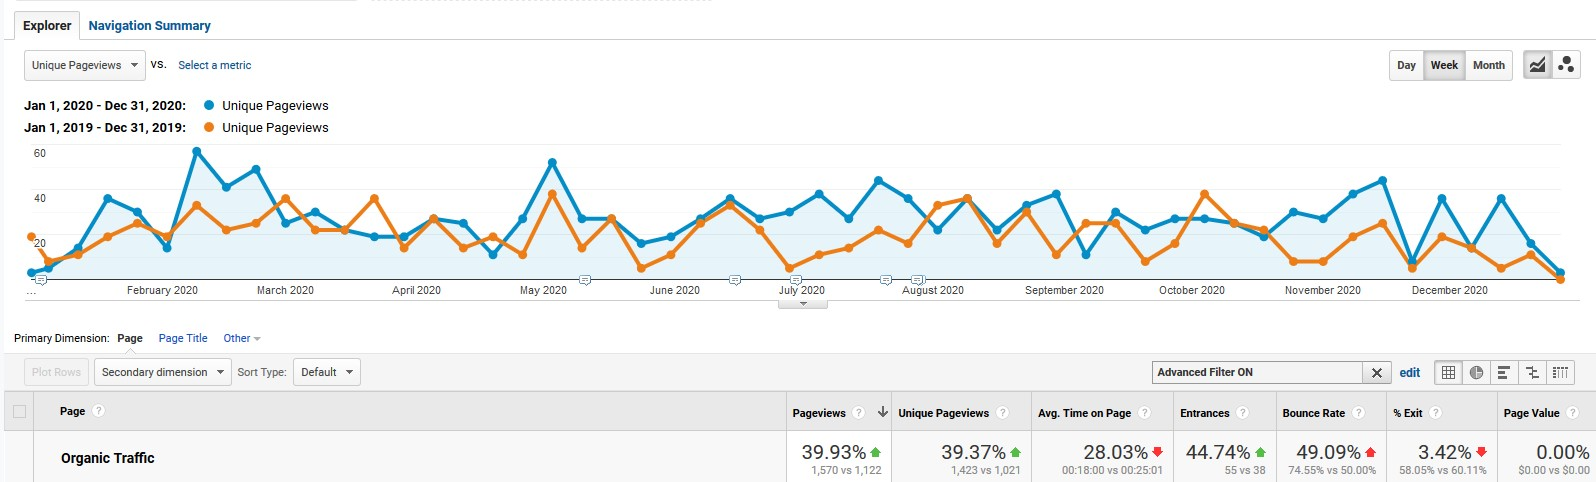 Search Engine Optimization Marketing Leads Increase   Blue Line On Graph Above Orange Line On Graph